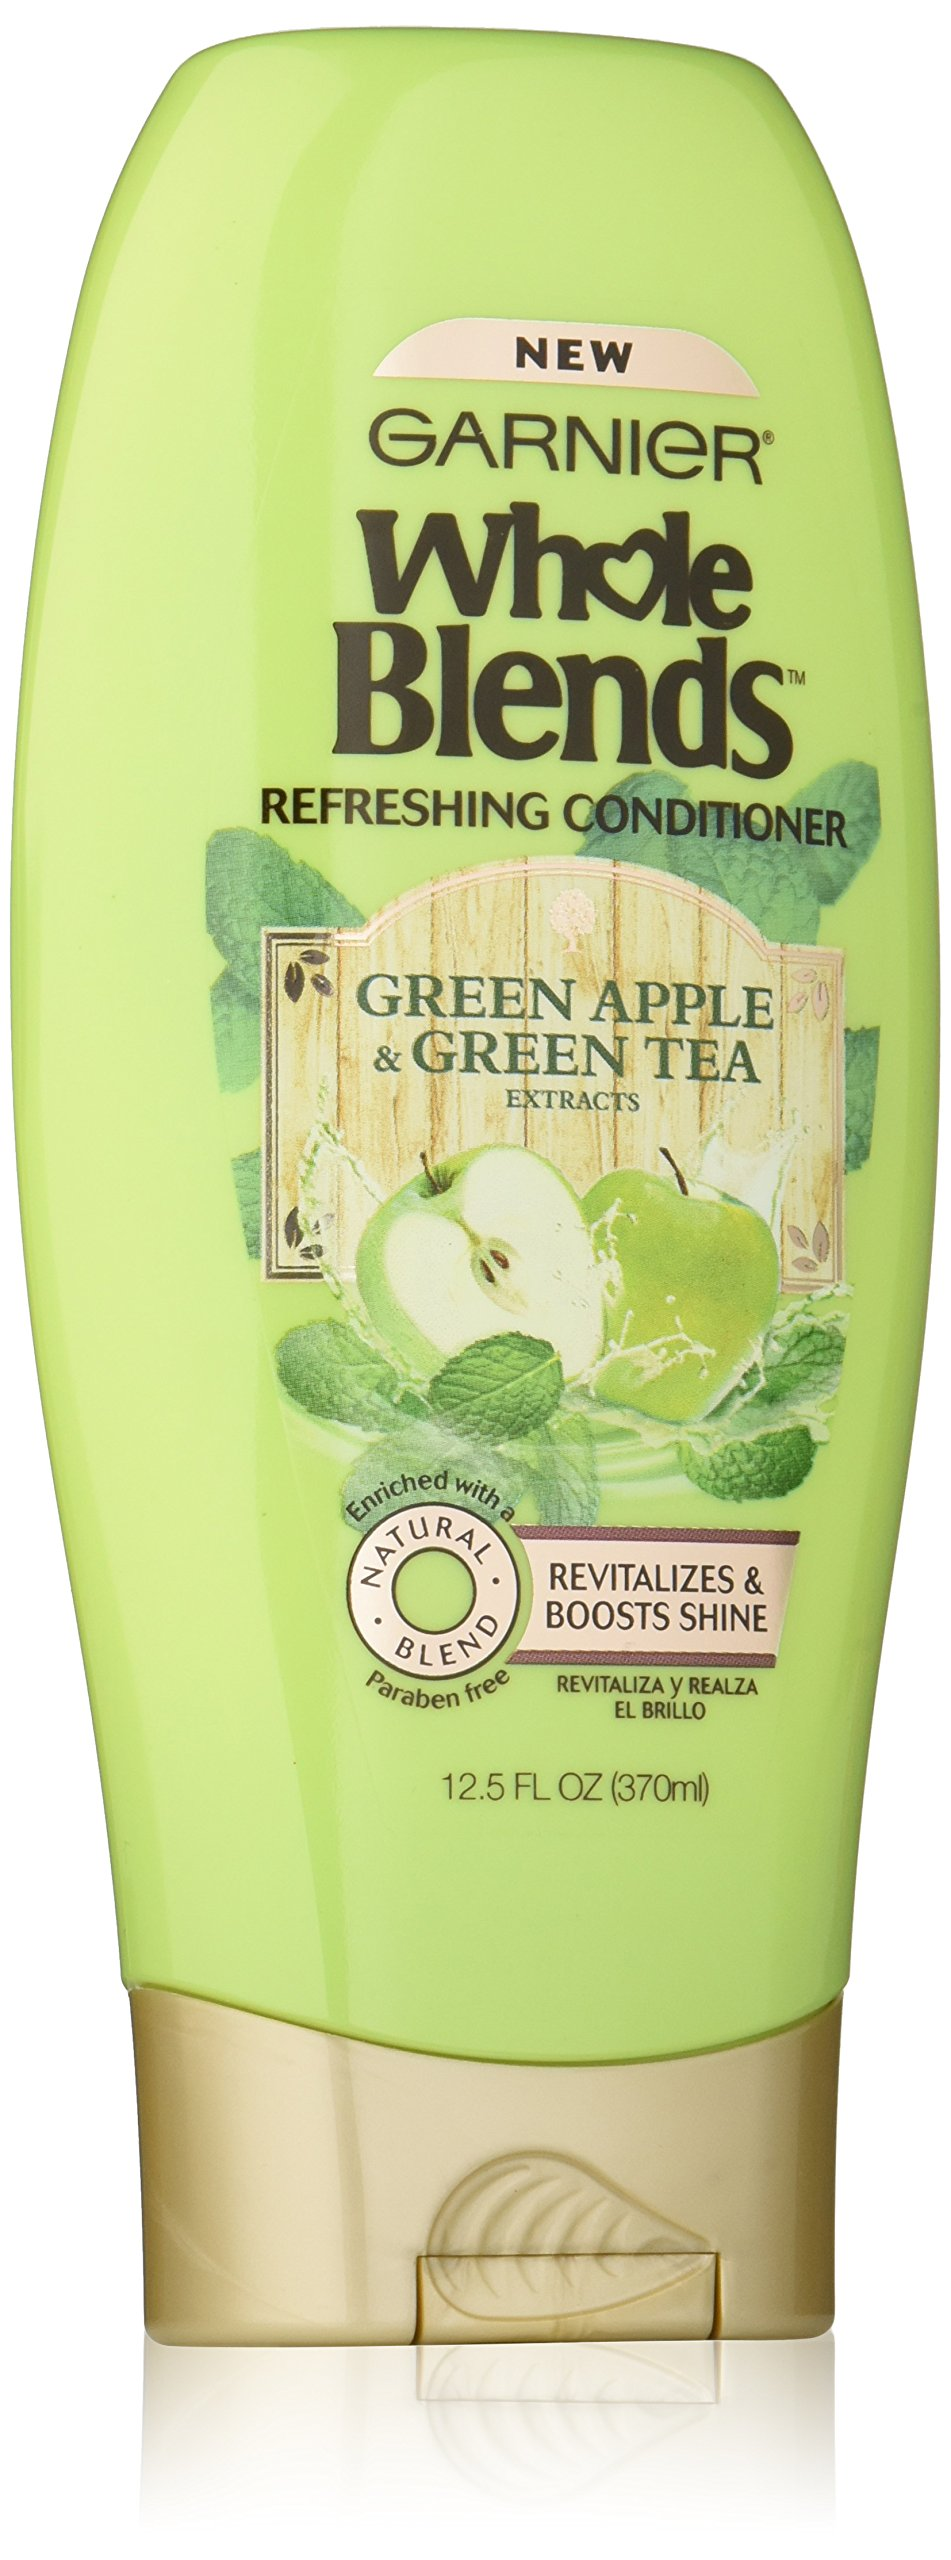 Garnier Whole Blends Conditioner with Green Apple & Green Tea Extracts, 12.5 fl. oz.